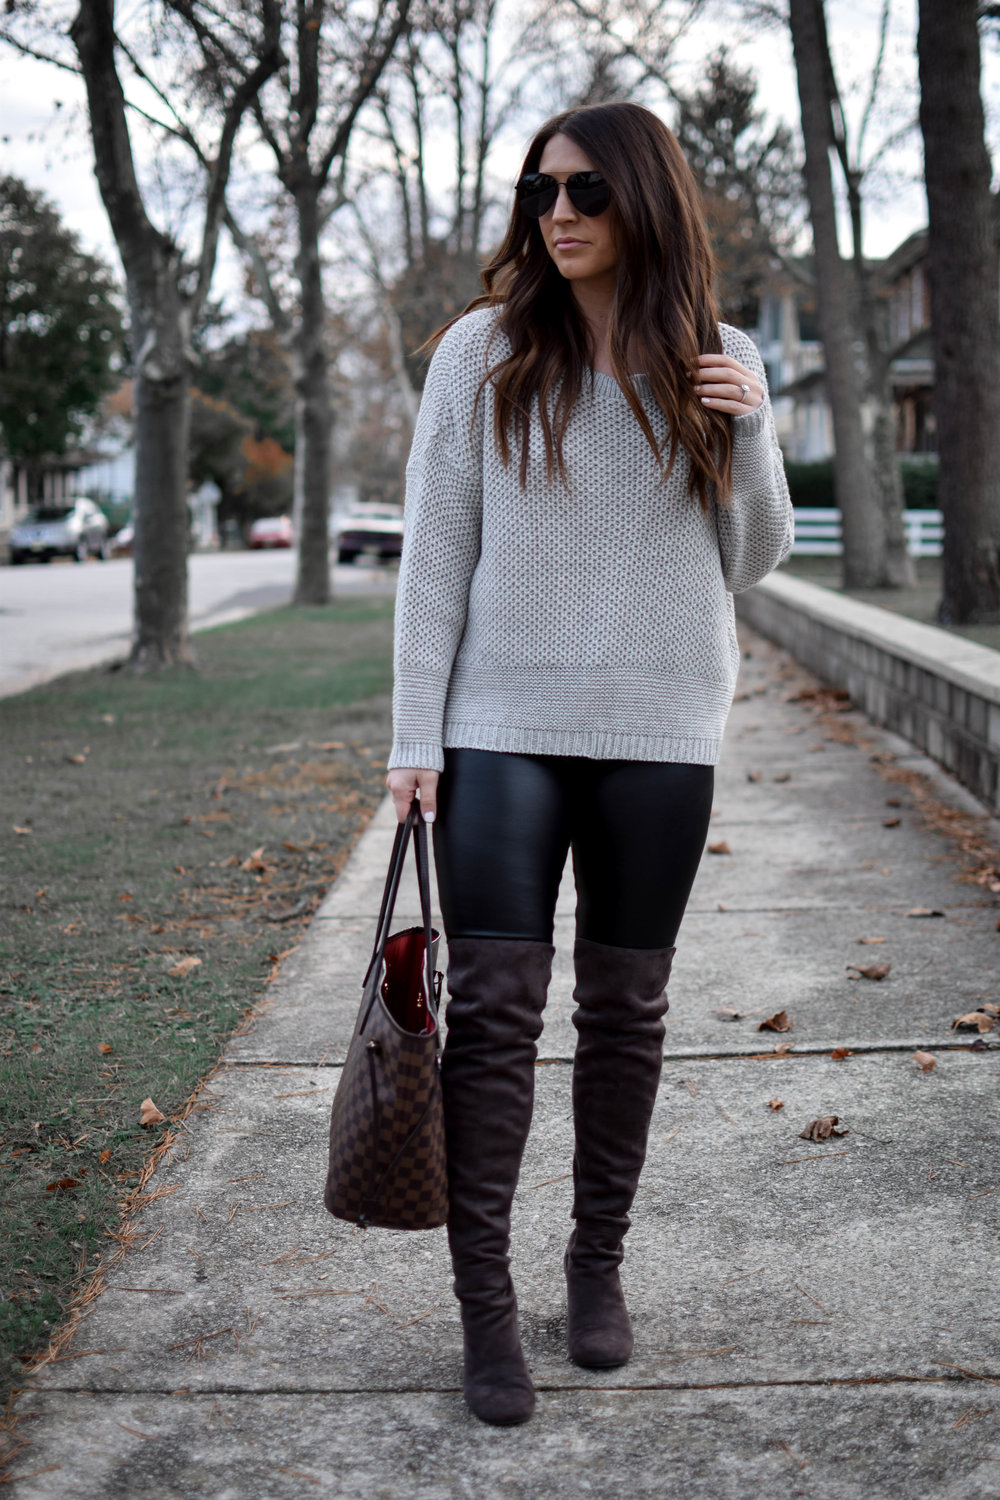 Faux Leather Leggings + Lace Up Sweater | Pine Barren Beauty | fall fashion, fall outfit idea, fall outfit inspiration, thanksgiving outfit idea